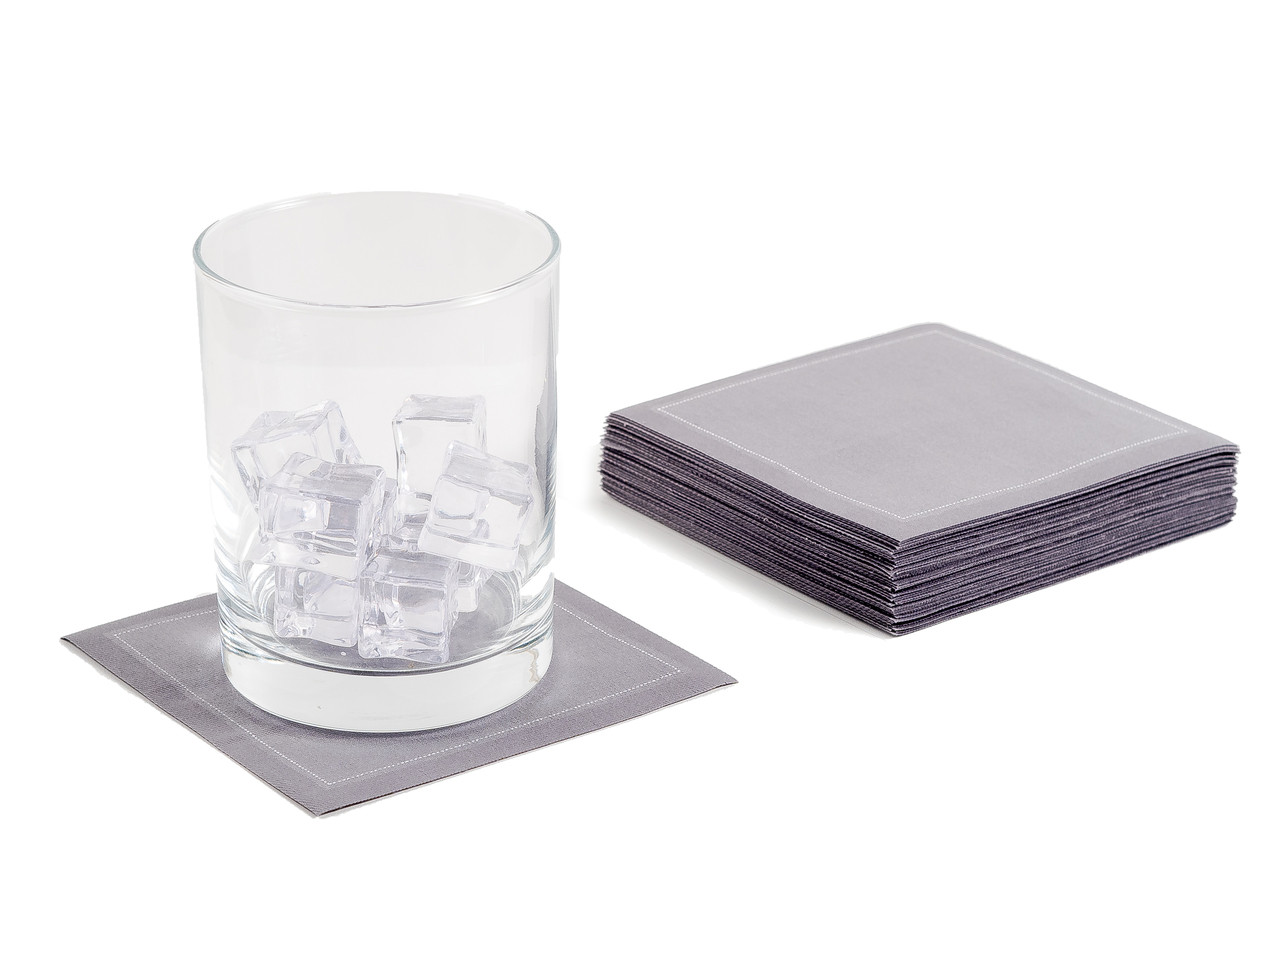 "Grey Cotton Cocktail - 4.5"" x 4.5"" - 50 Units"